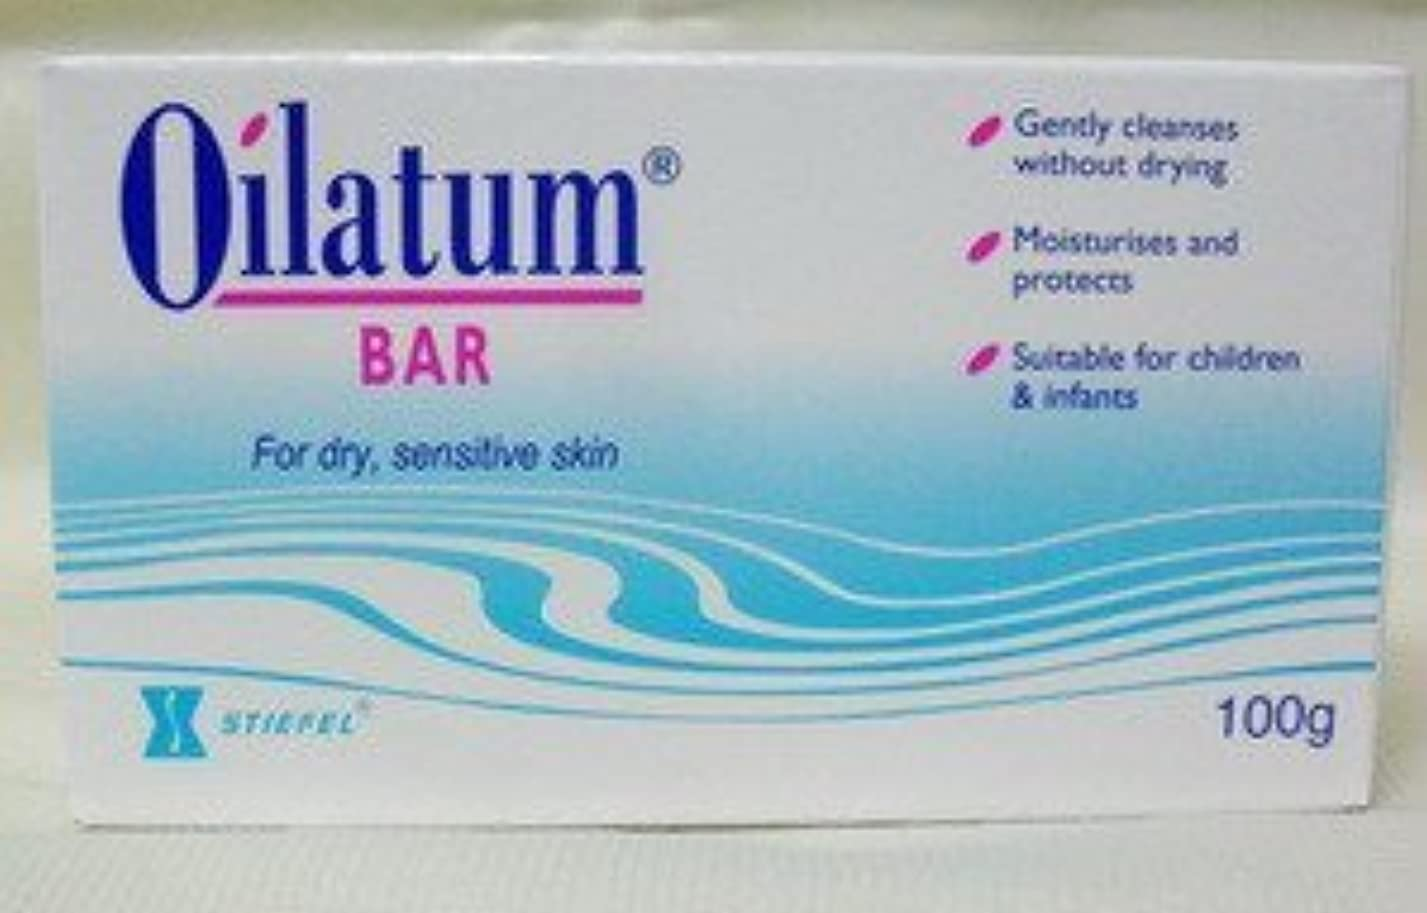 弱点期限切れエキサイティングPack of 12 Oilatum Bar Soap 100g. Free Shopping by Oilatum